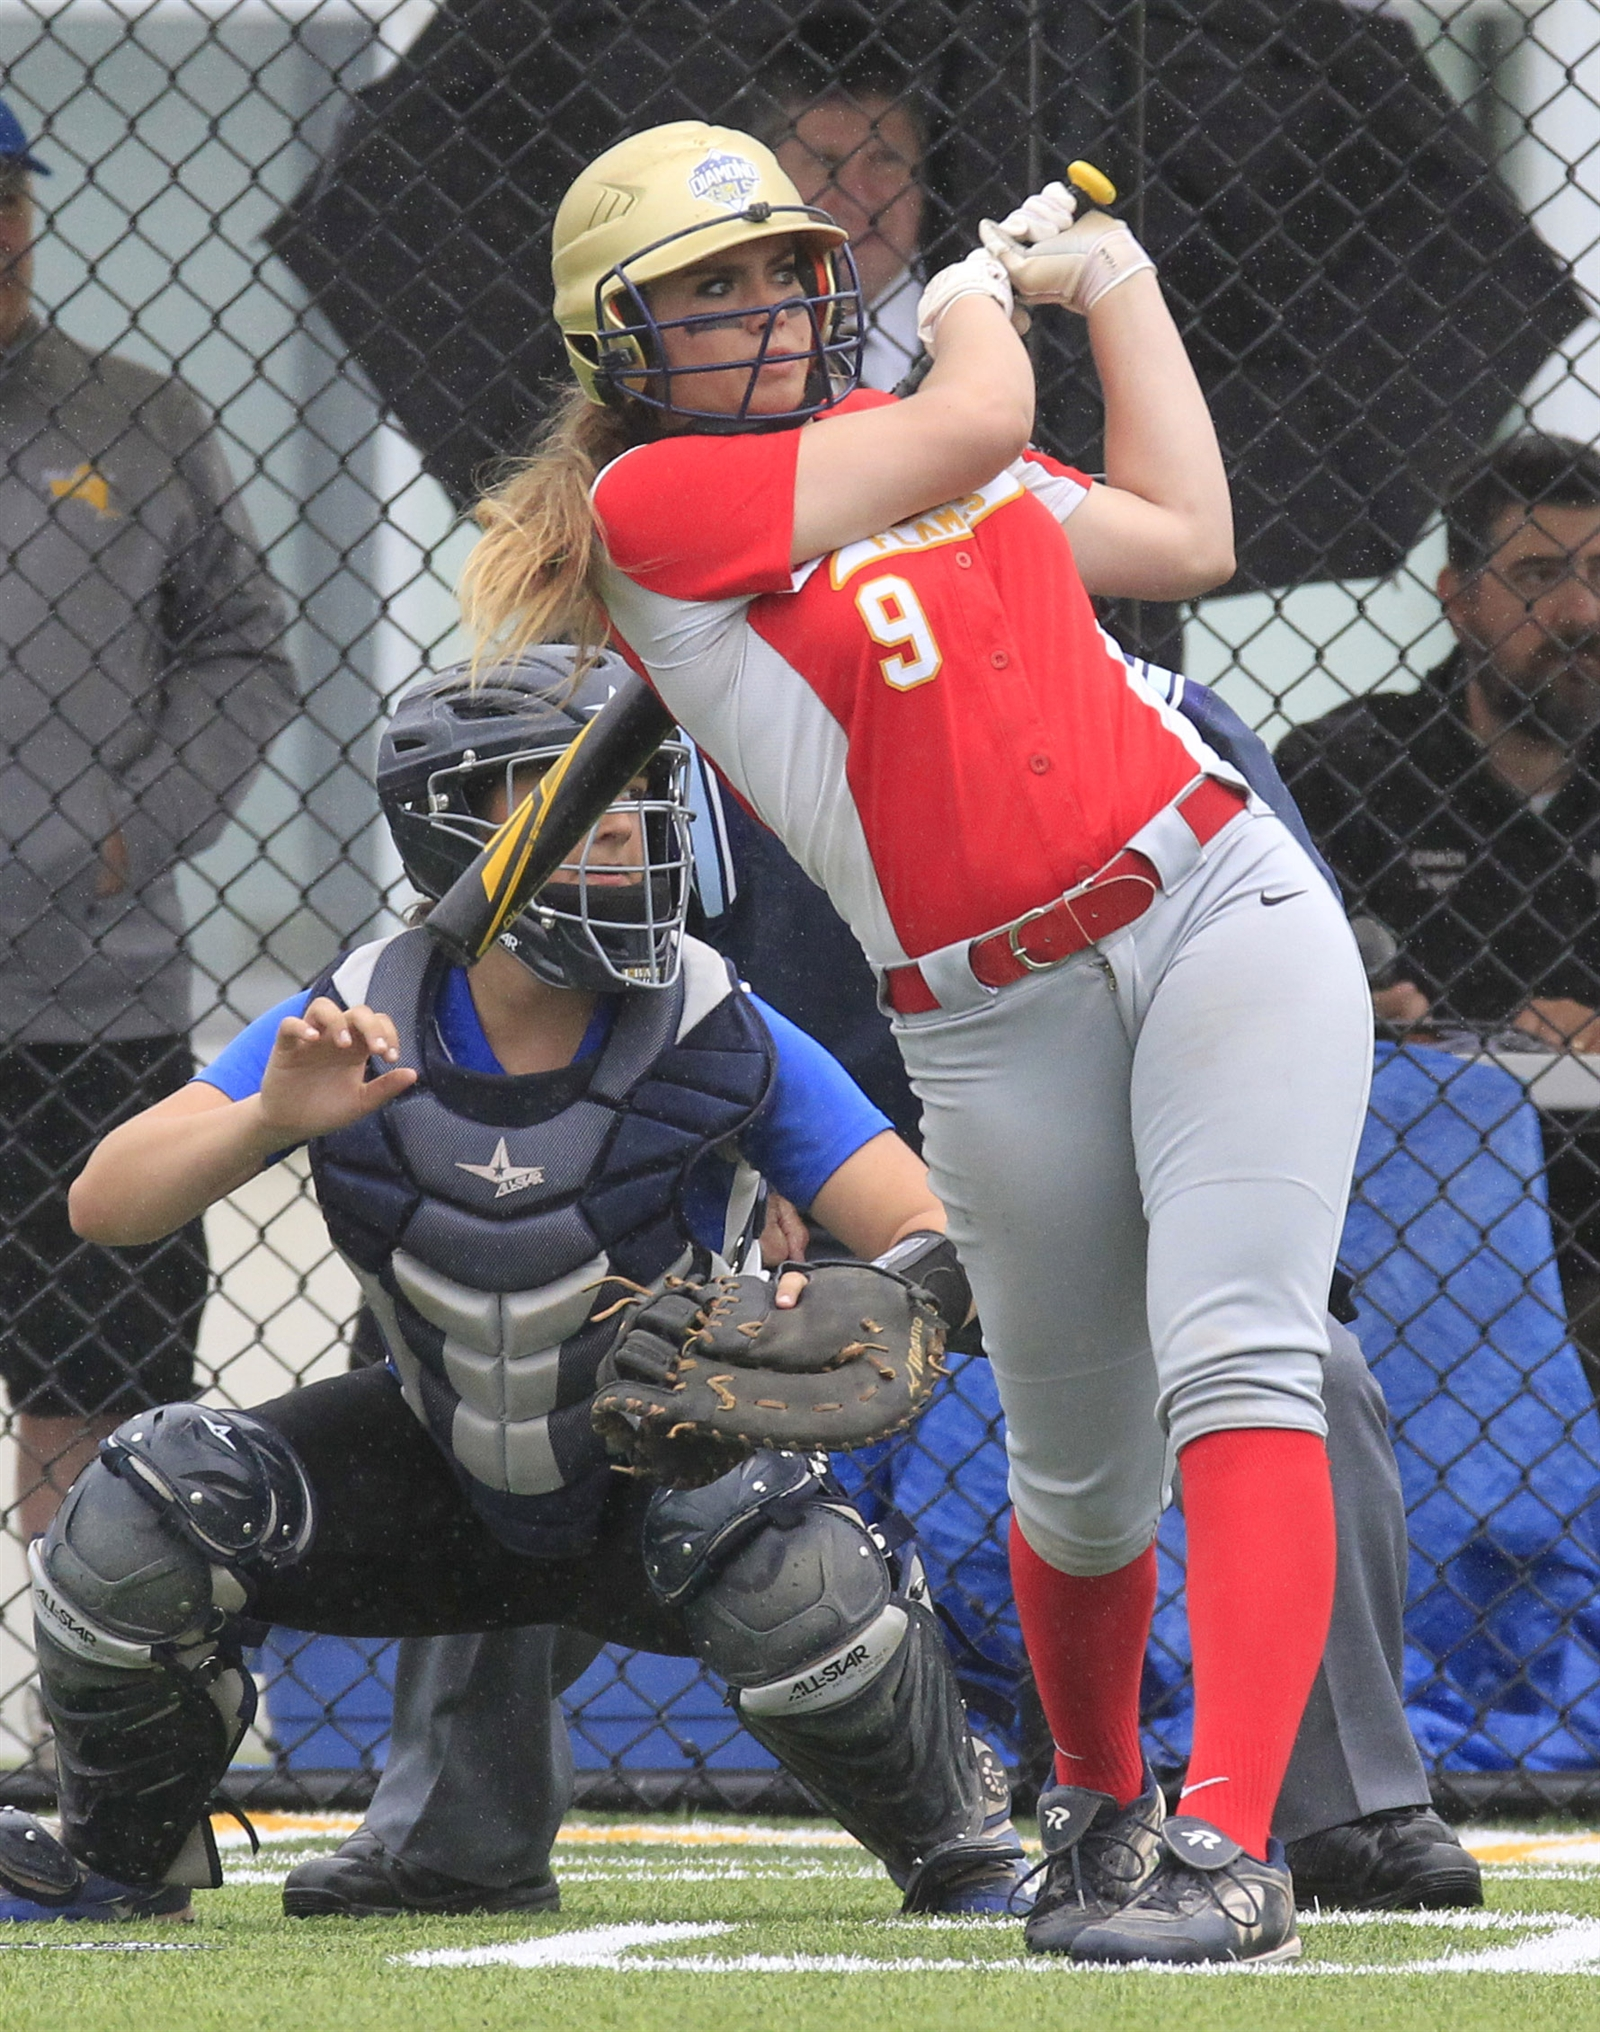 Williamsville Eastu2019s Christy Mack hits a first inning sacrifice RBI against Williamsville South.